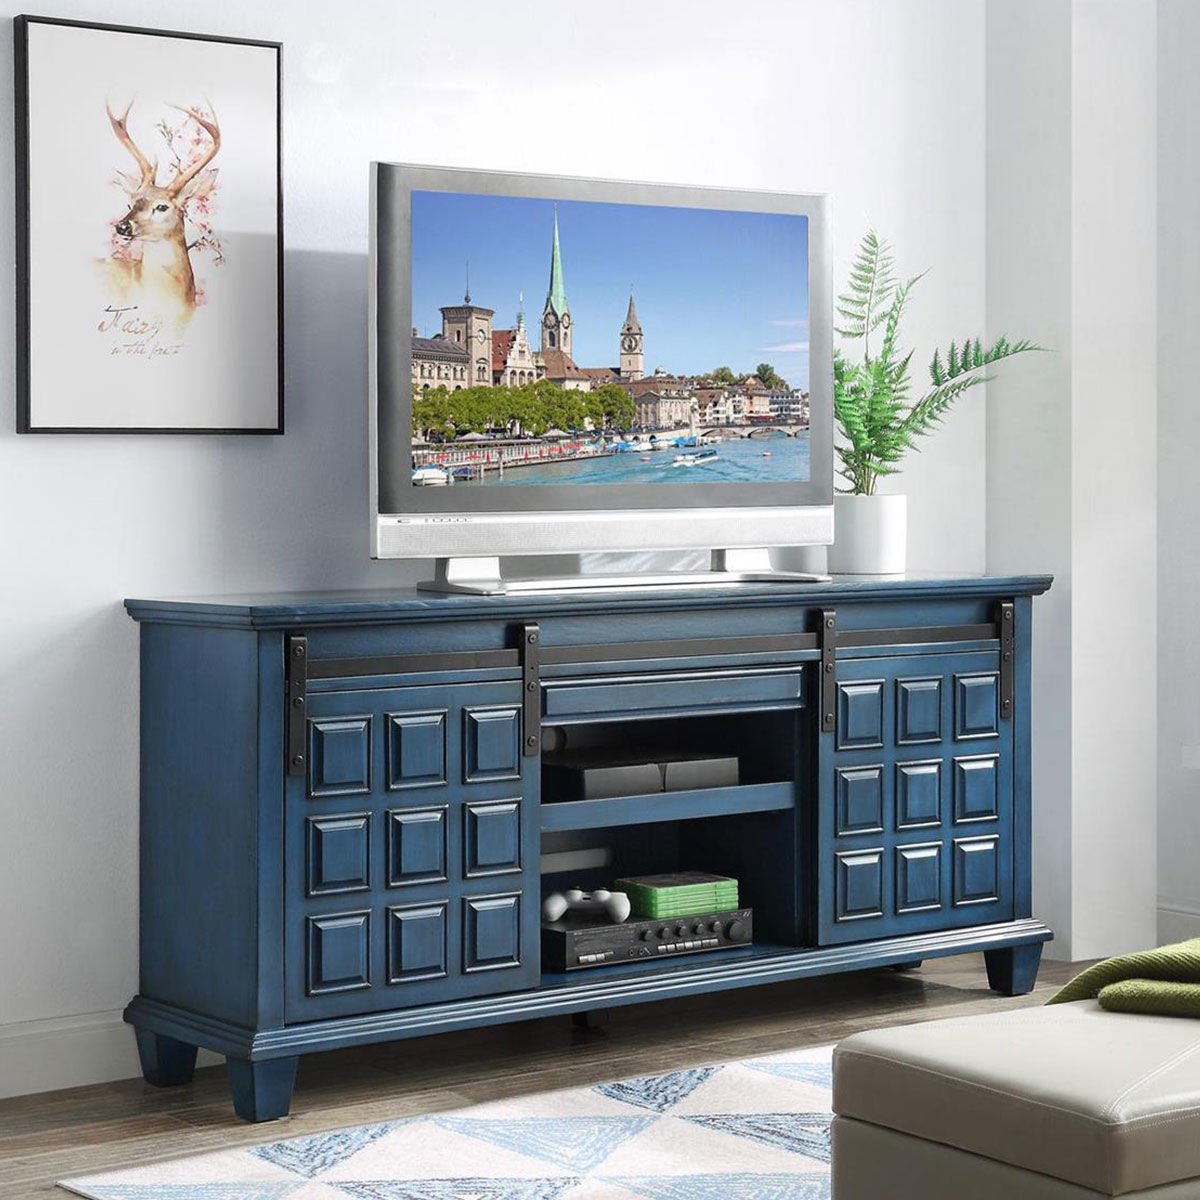 Picture of 1 DOOR 2 DRAWER MEDIA CREDENZA IN BLUE